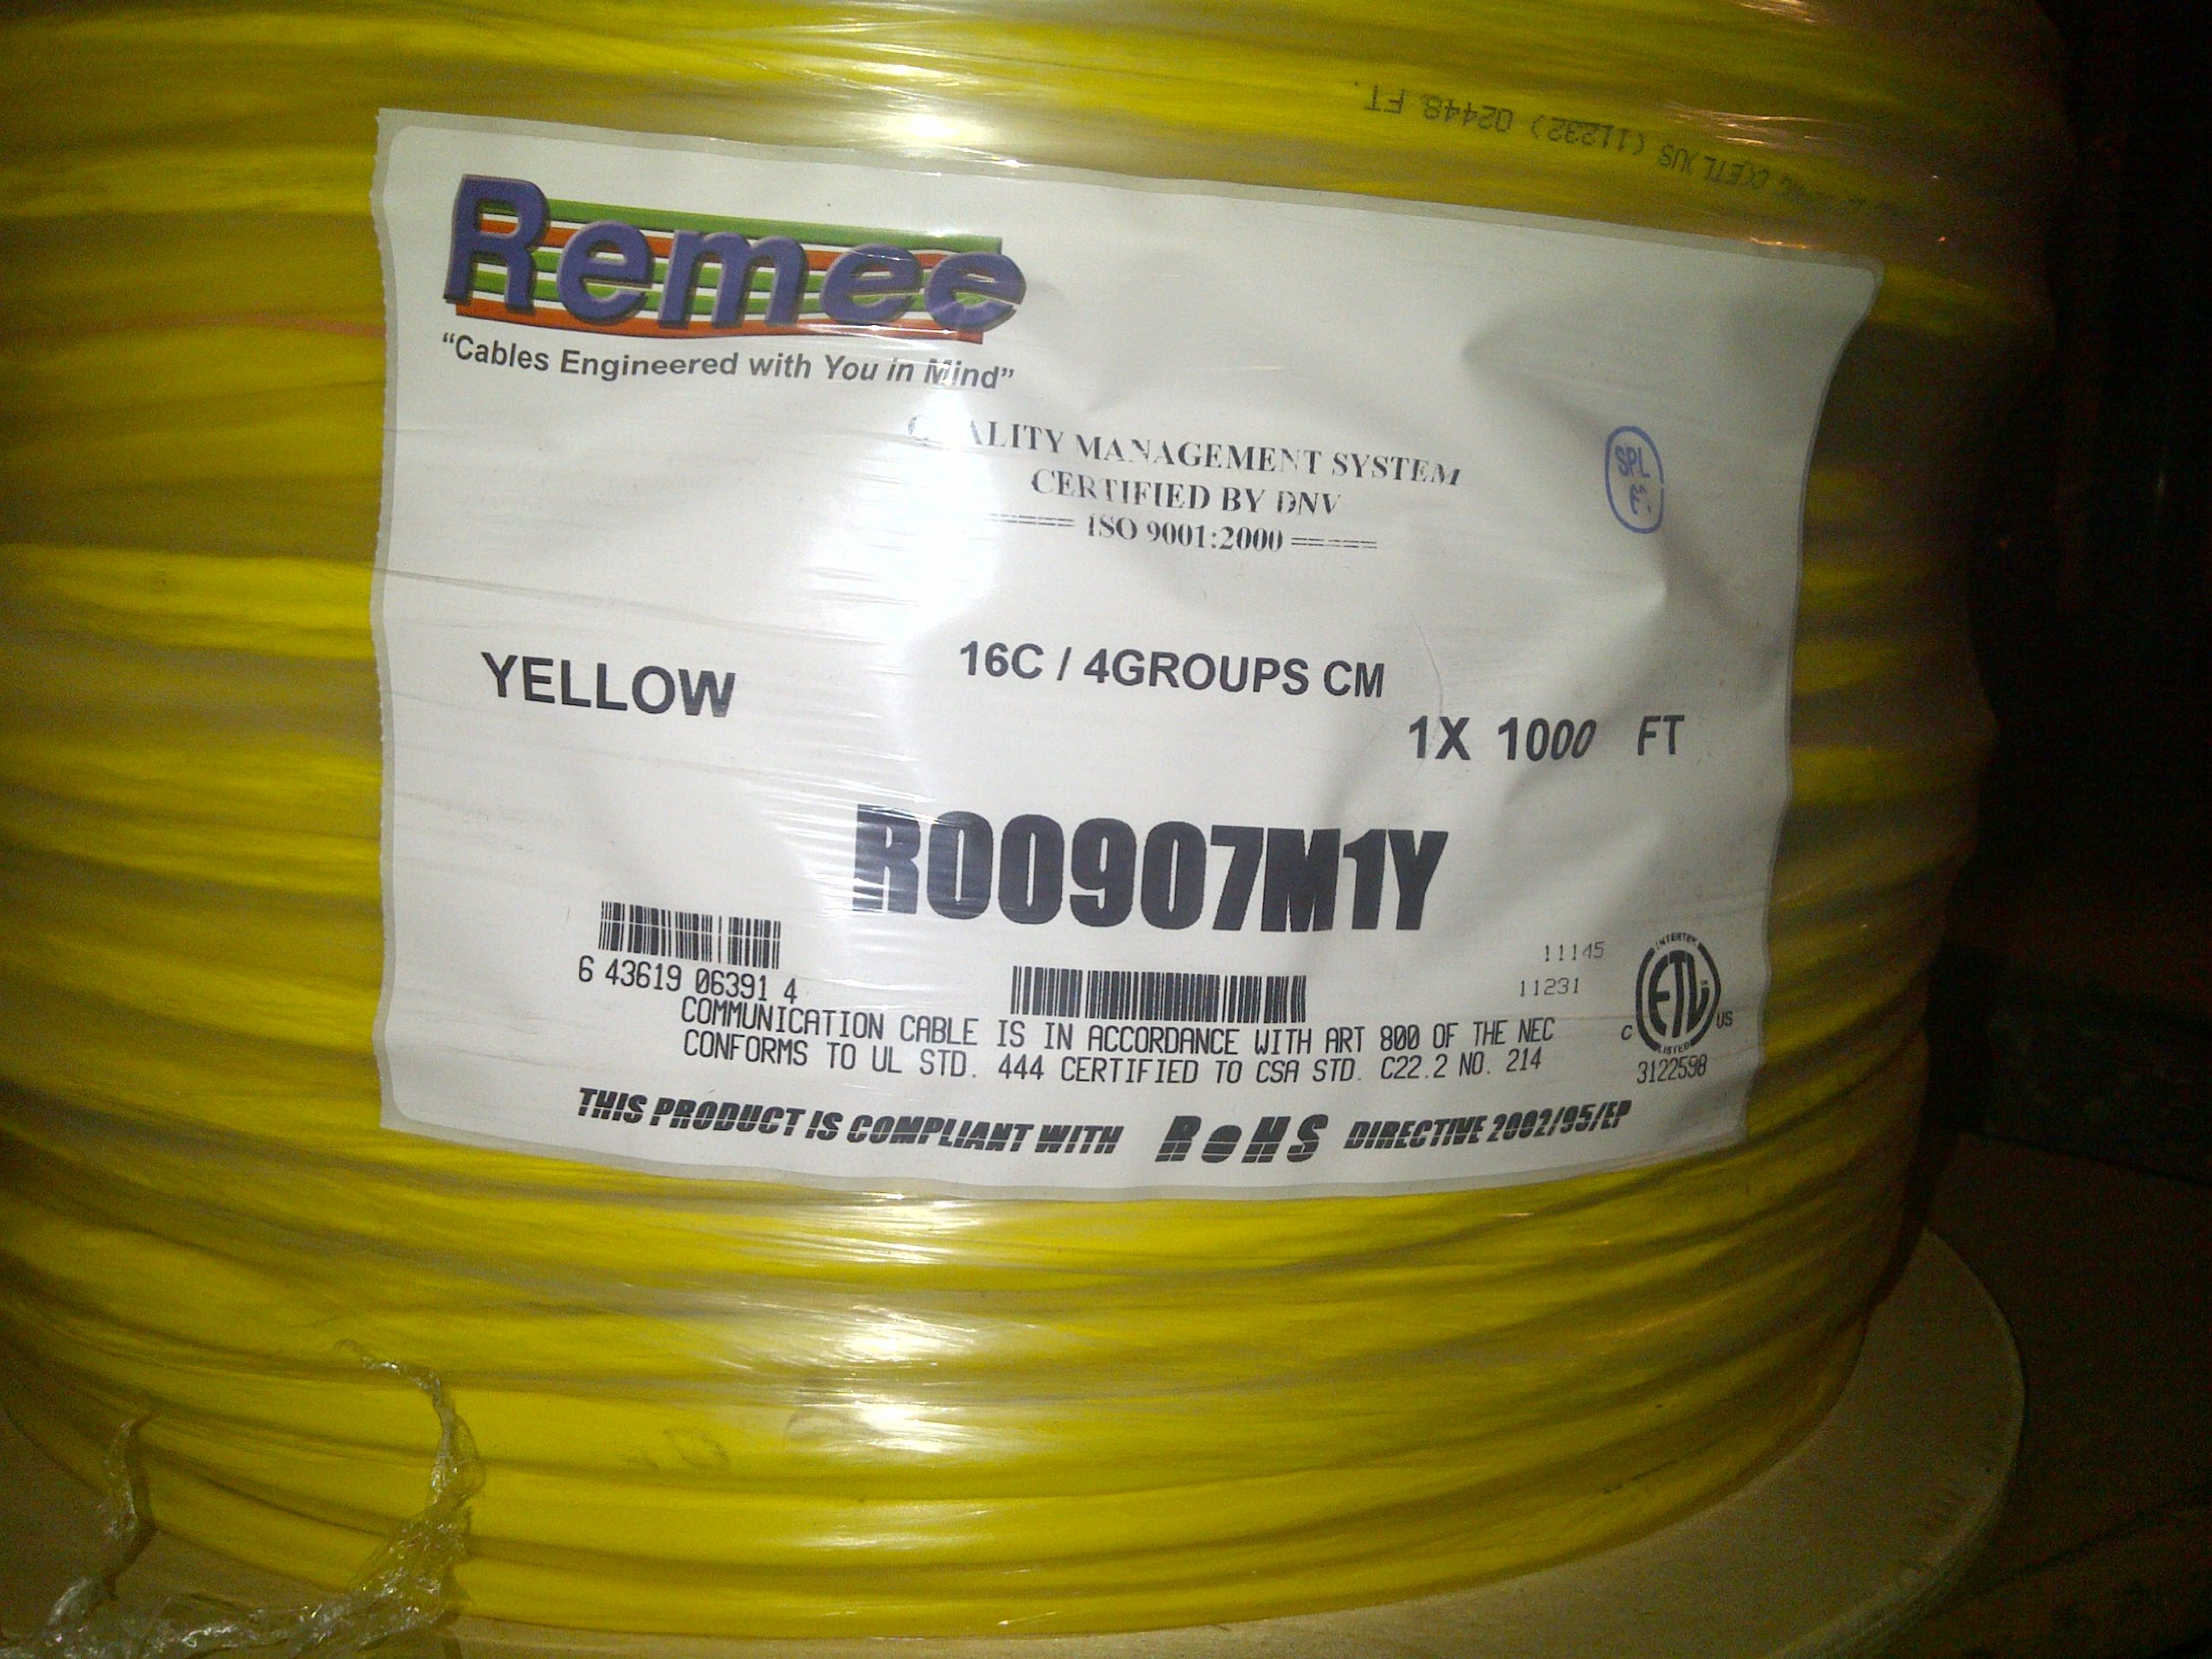 REMEE R00907M 16-CONDUCTOR SHLD COMPOSITE CARD ACCESS CONTROL CABLE PVC 1000 FEET